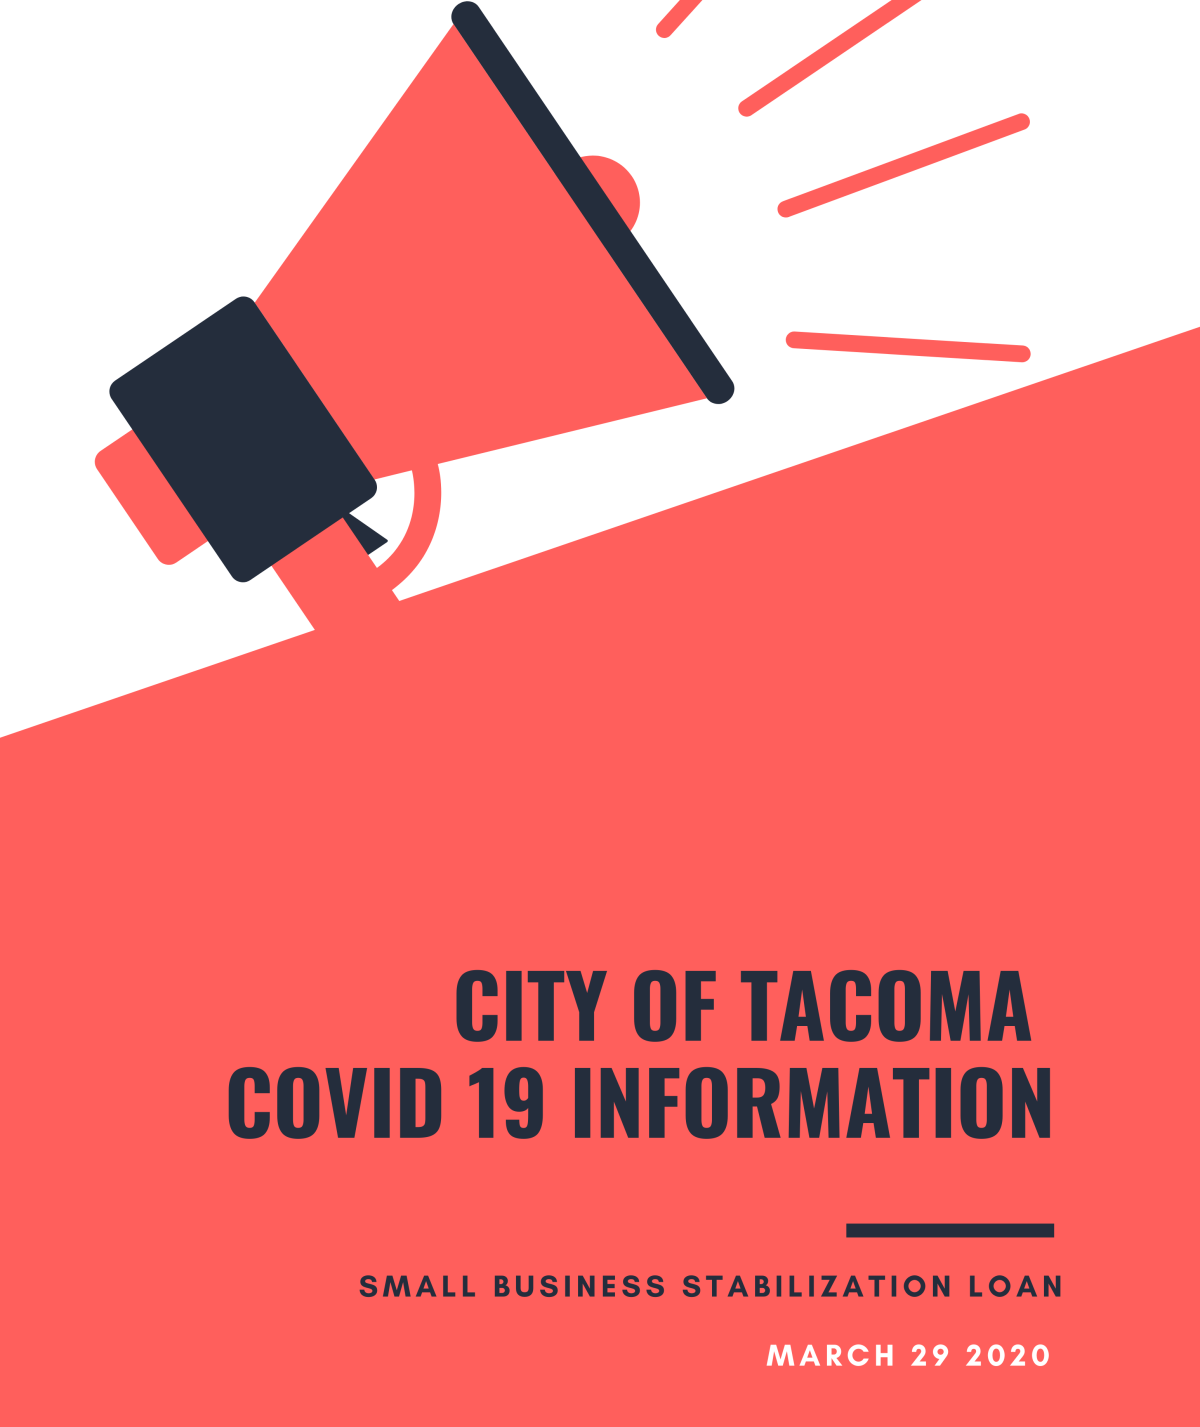 29Mar2020 New From City of Tacoma: Small Business Loan Information in 6Languages